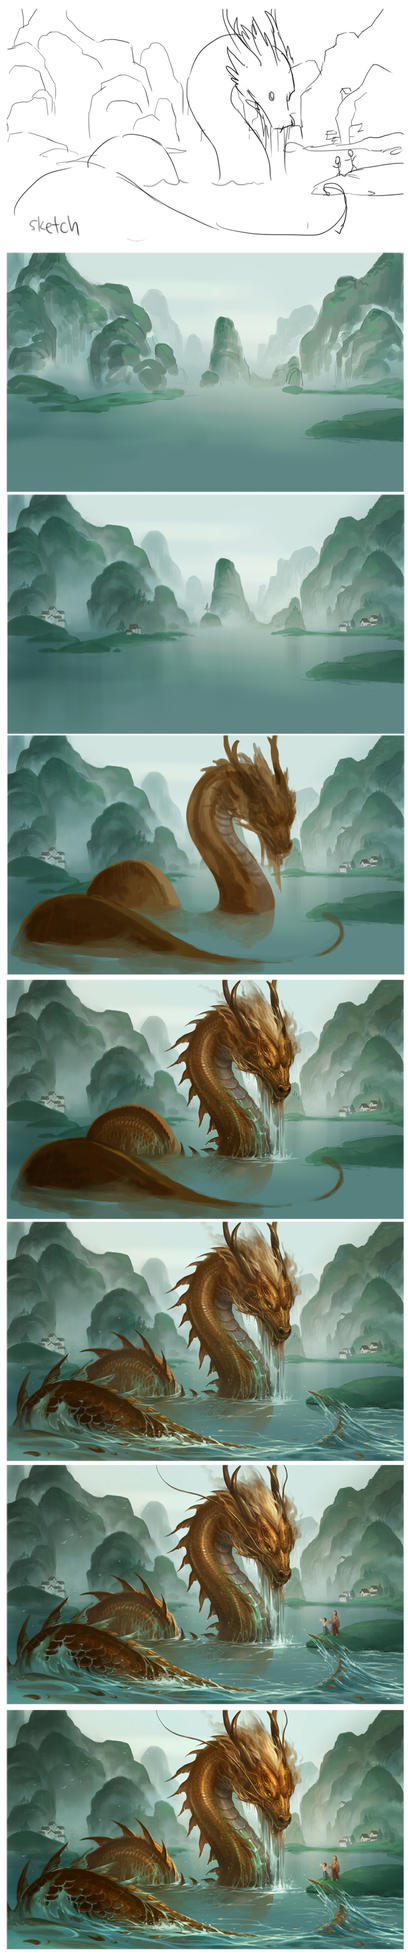 river process by sandara